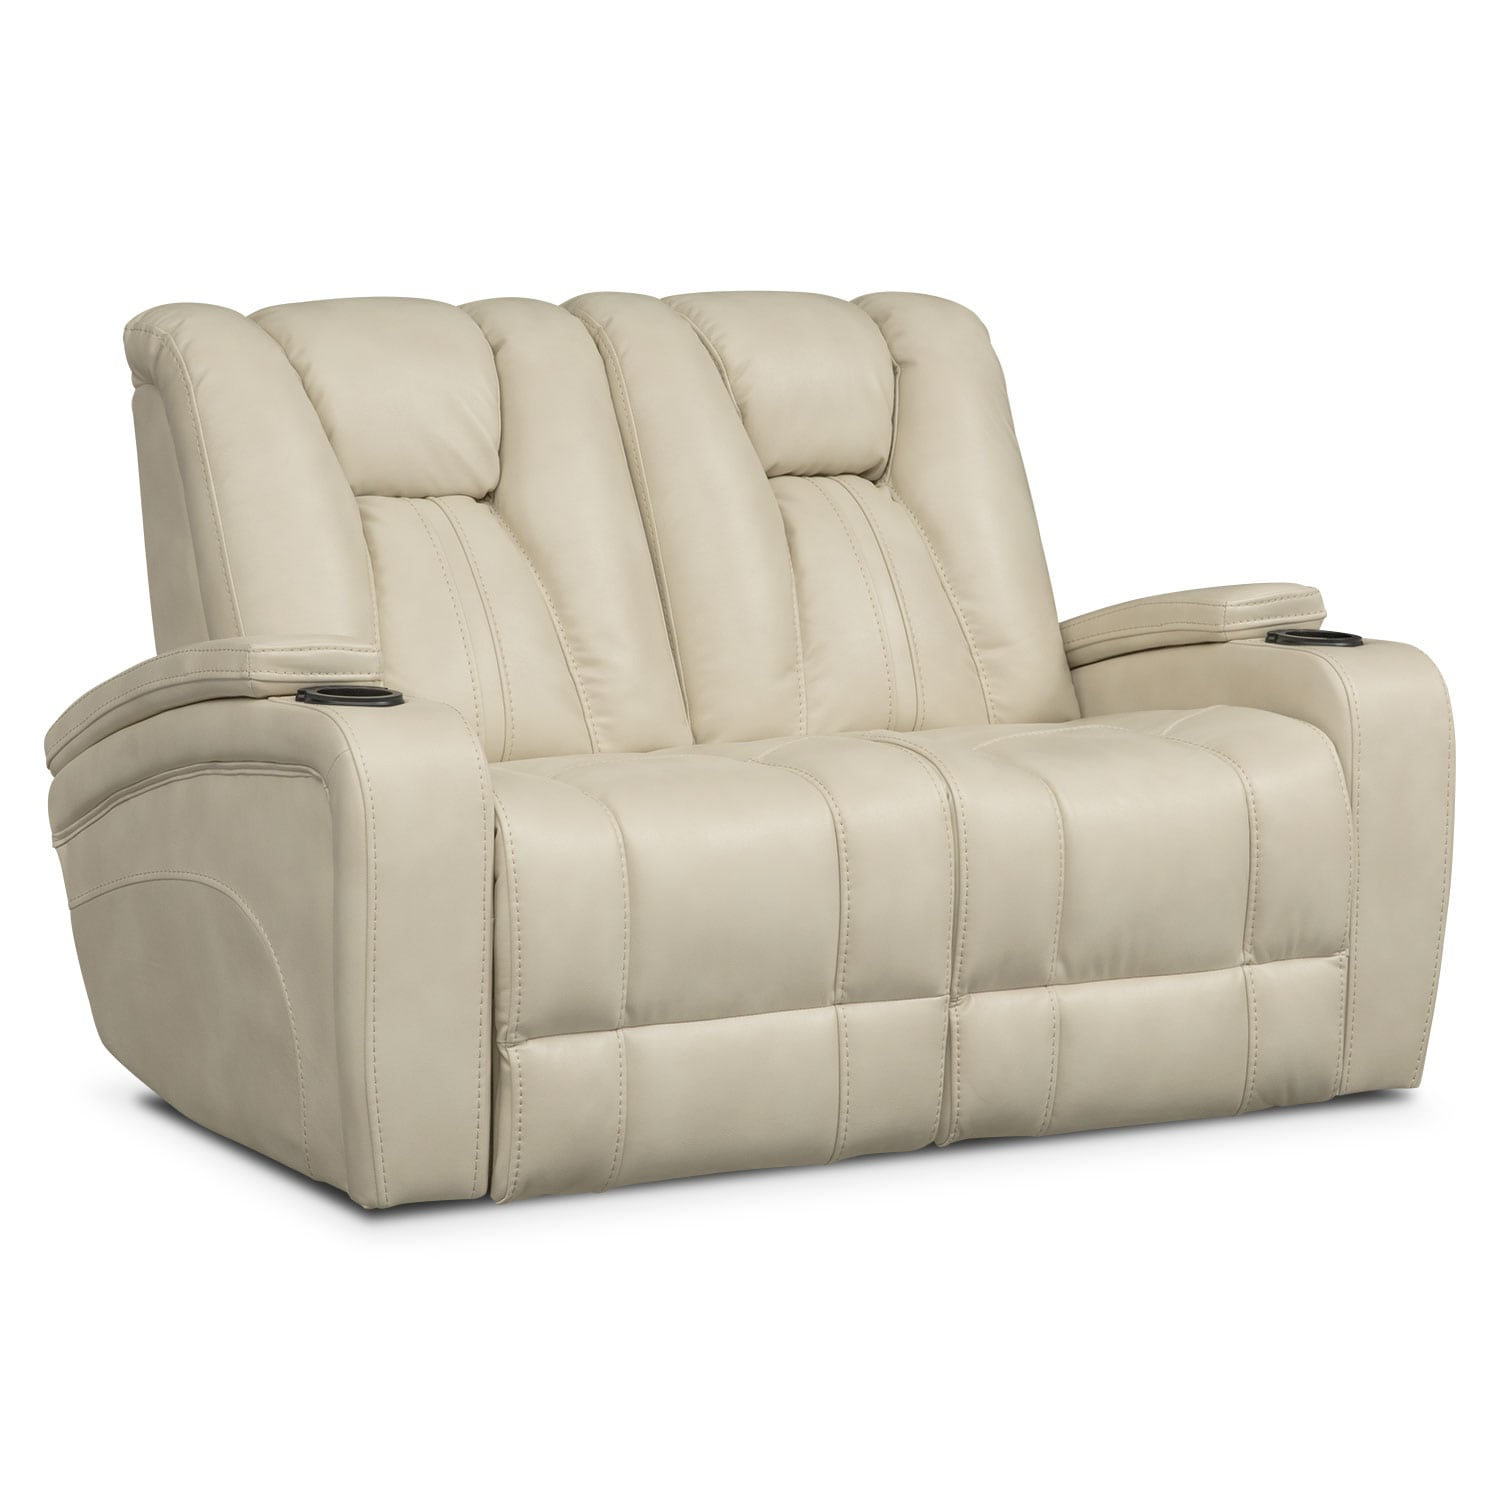 Living Room Furniture - Pulsar Dual Power Reclining Loveseat - Cream